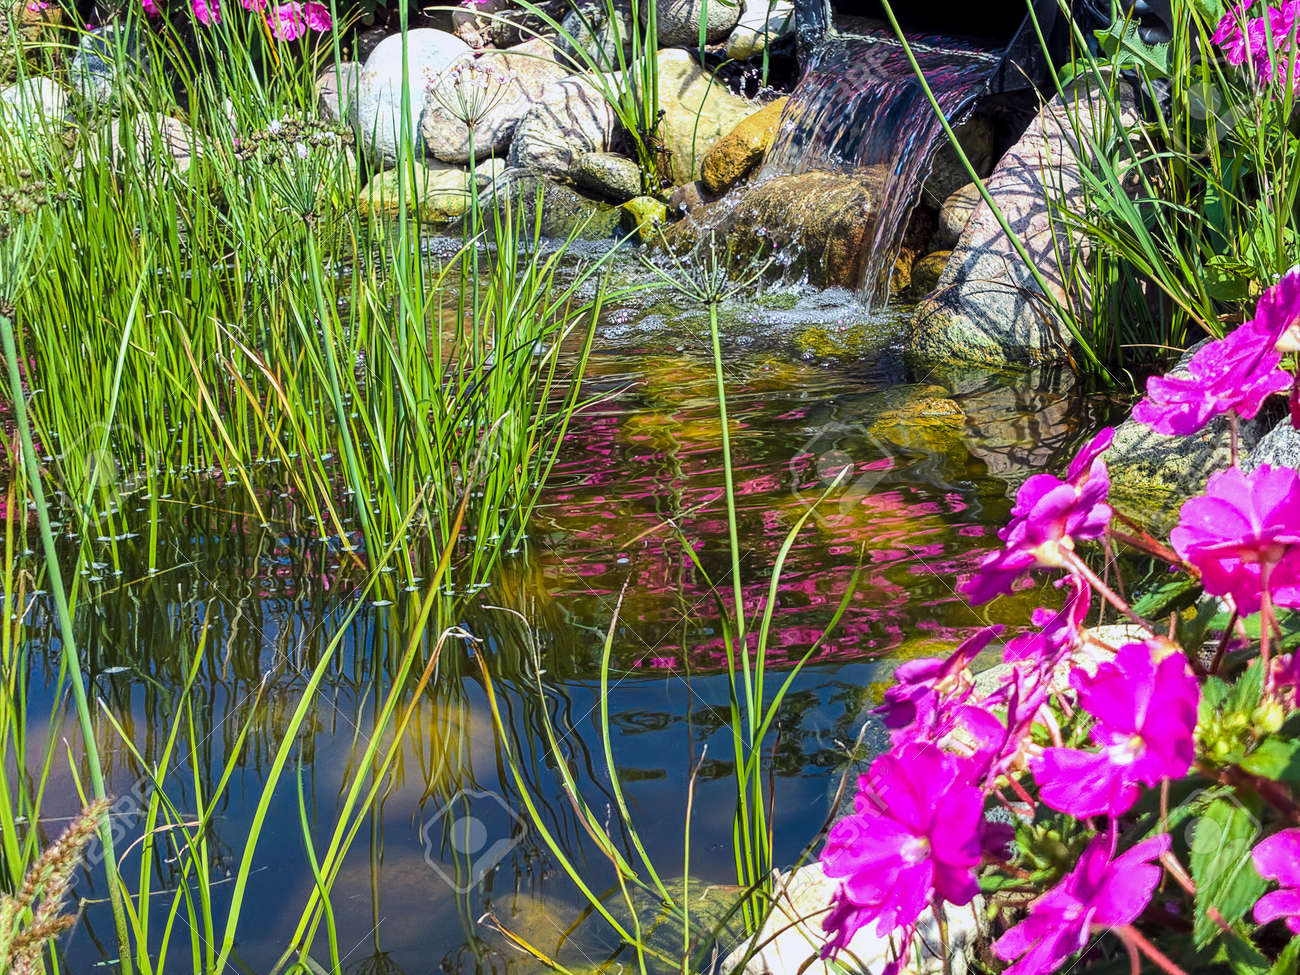 Ornamental Grass And Pink Impatiens Flowers In Rock Garden With